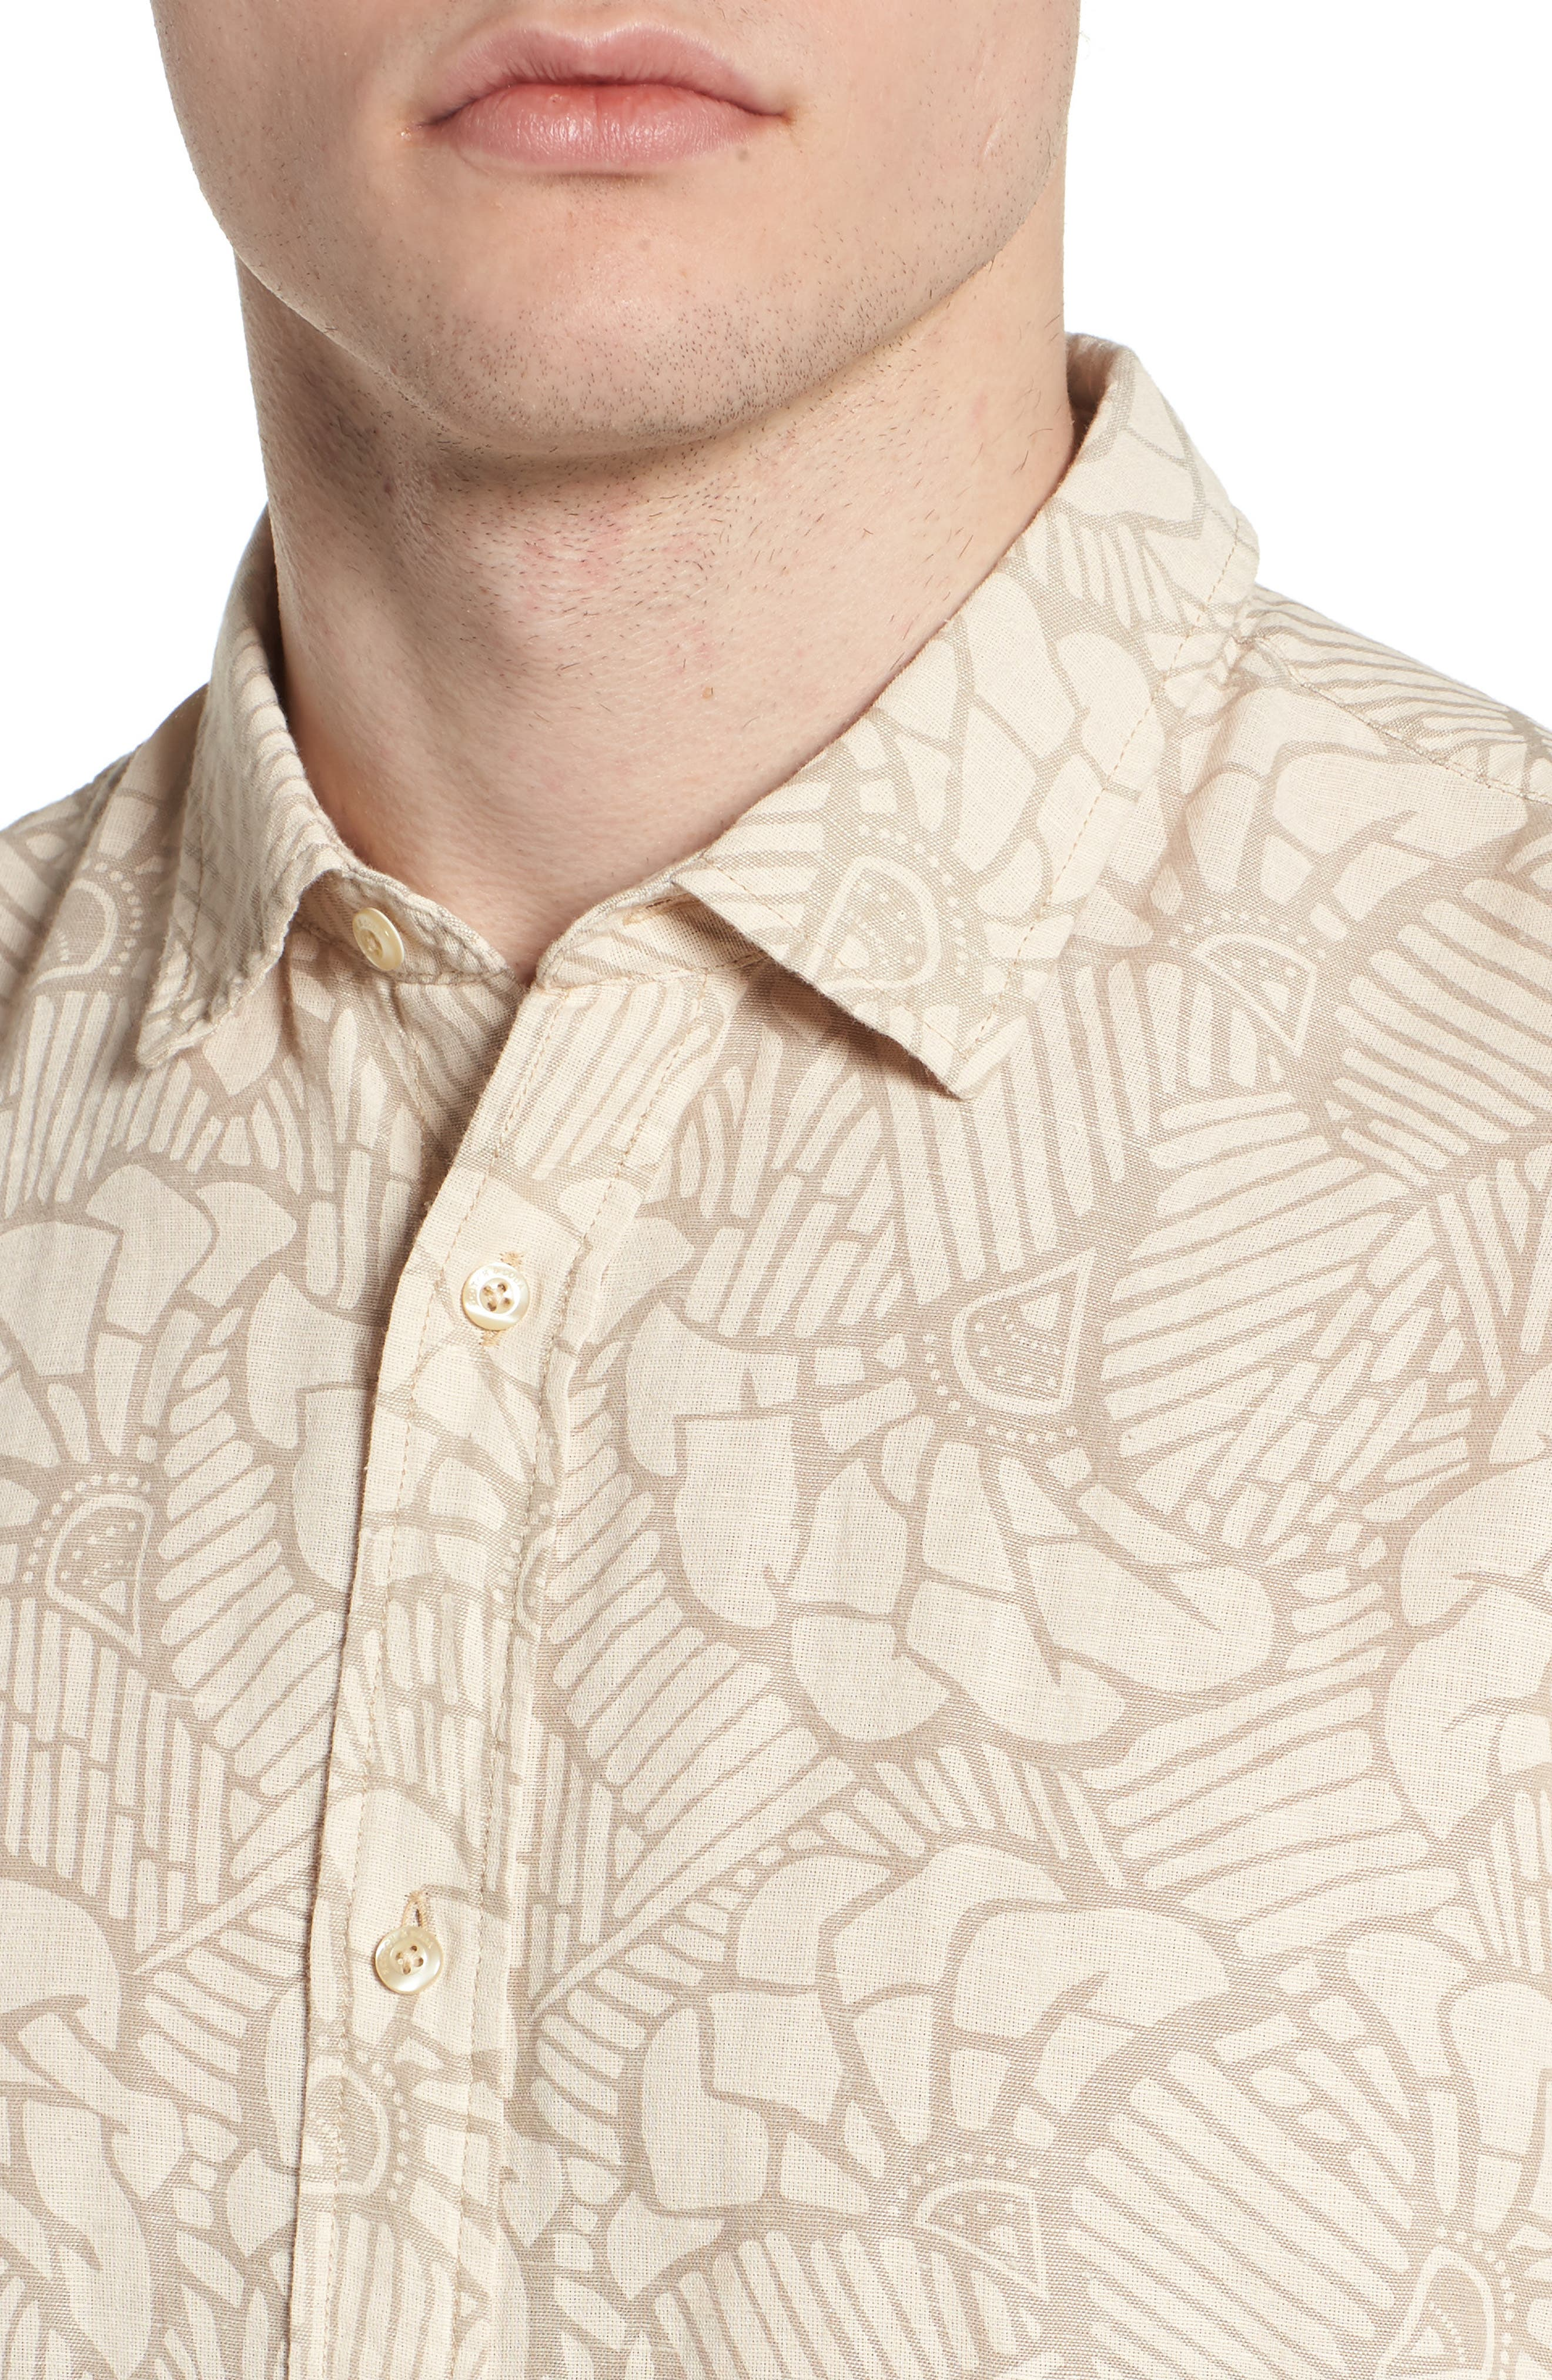 Relaxed Fit Sport Shirt,                             Alternate thumbnail 2, color,                             Combo B